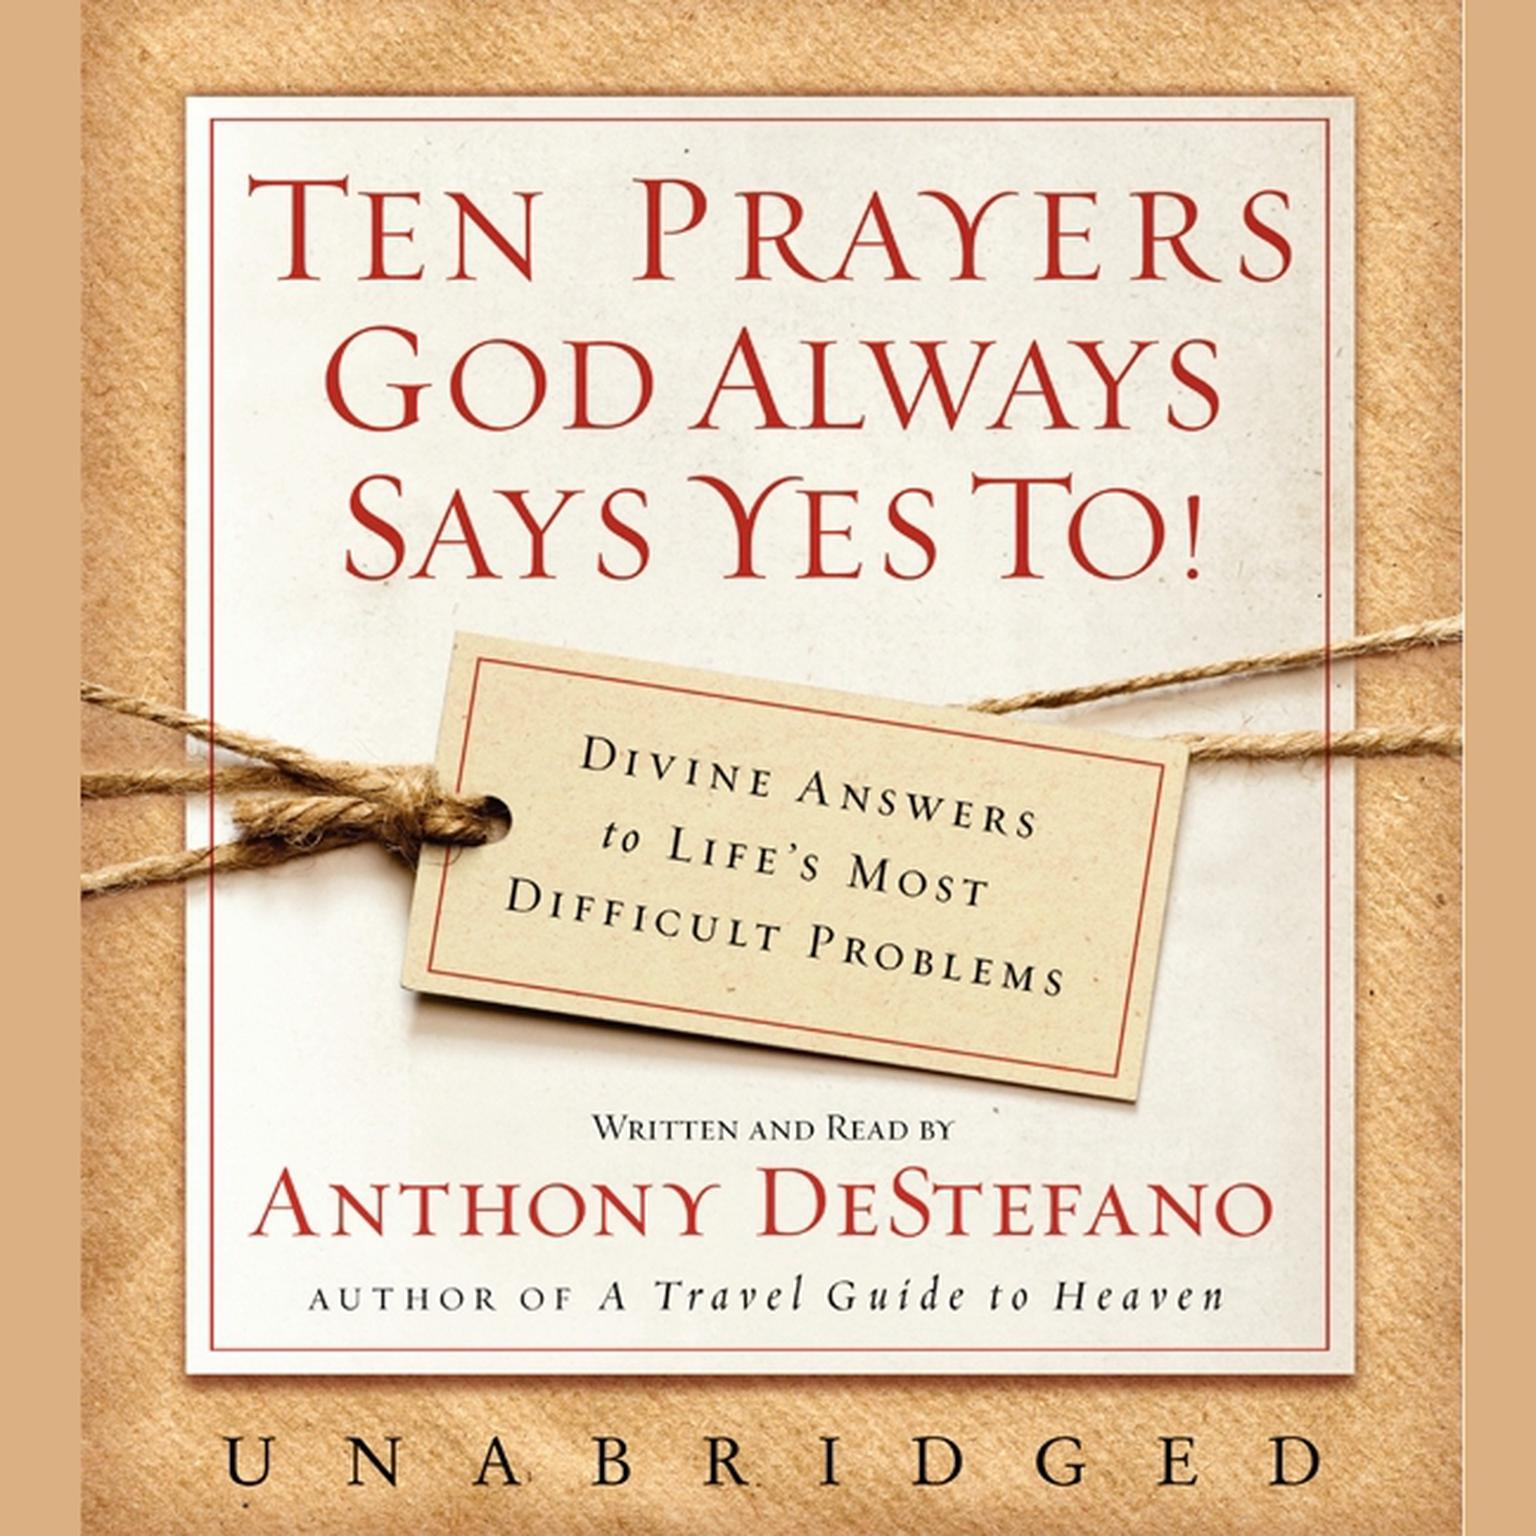 Printable Ten Prayers God Always Says Yes To UNA: Divine Answers to Life's Most Difficult Problems Audiobook Cover Art